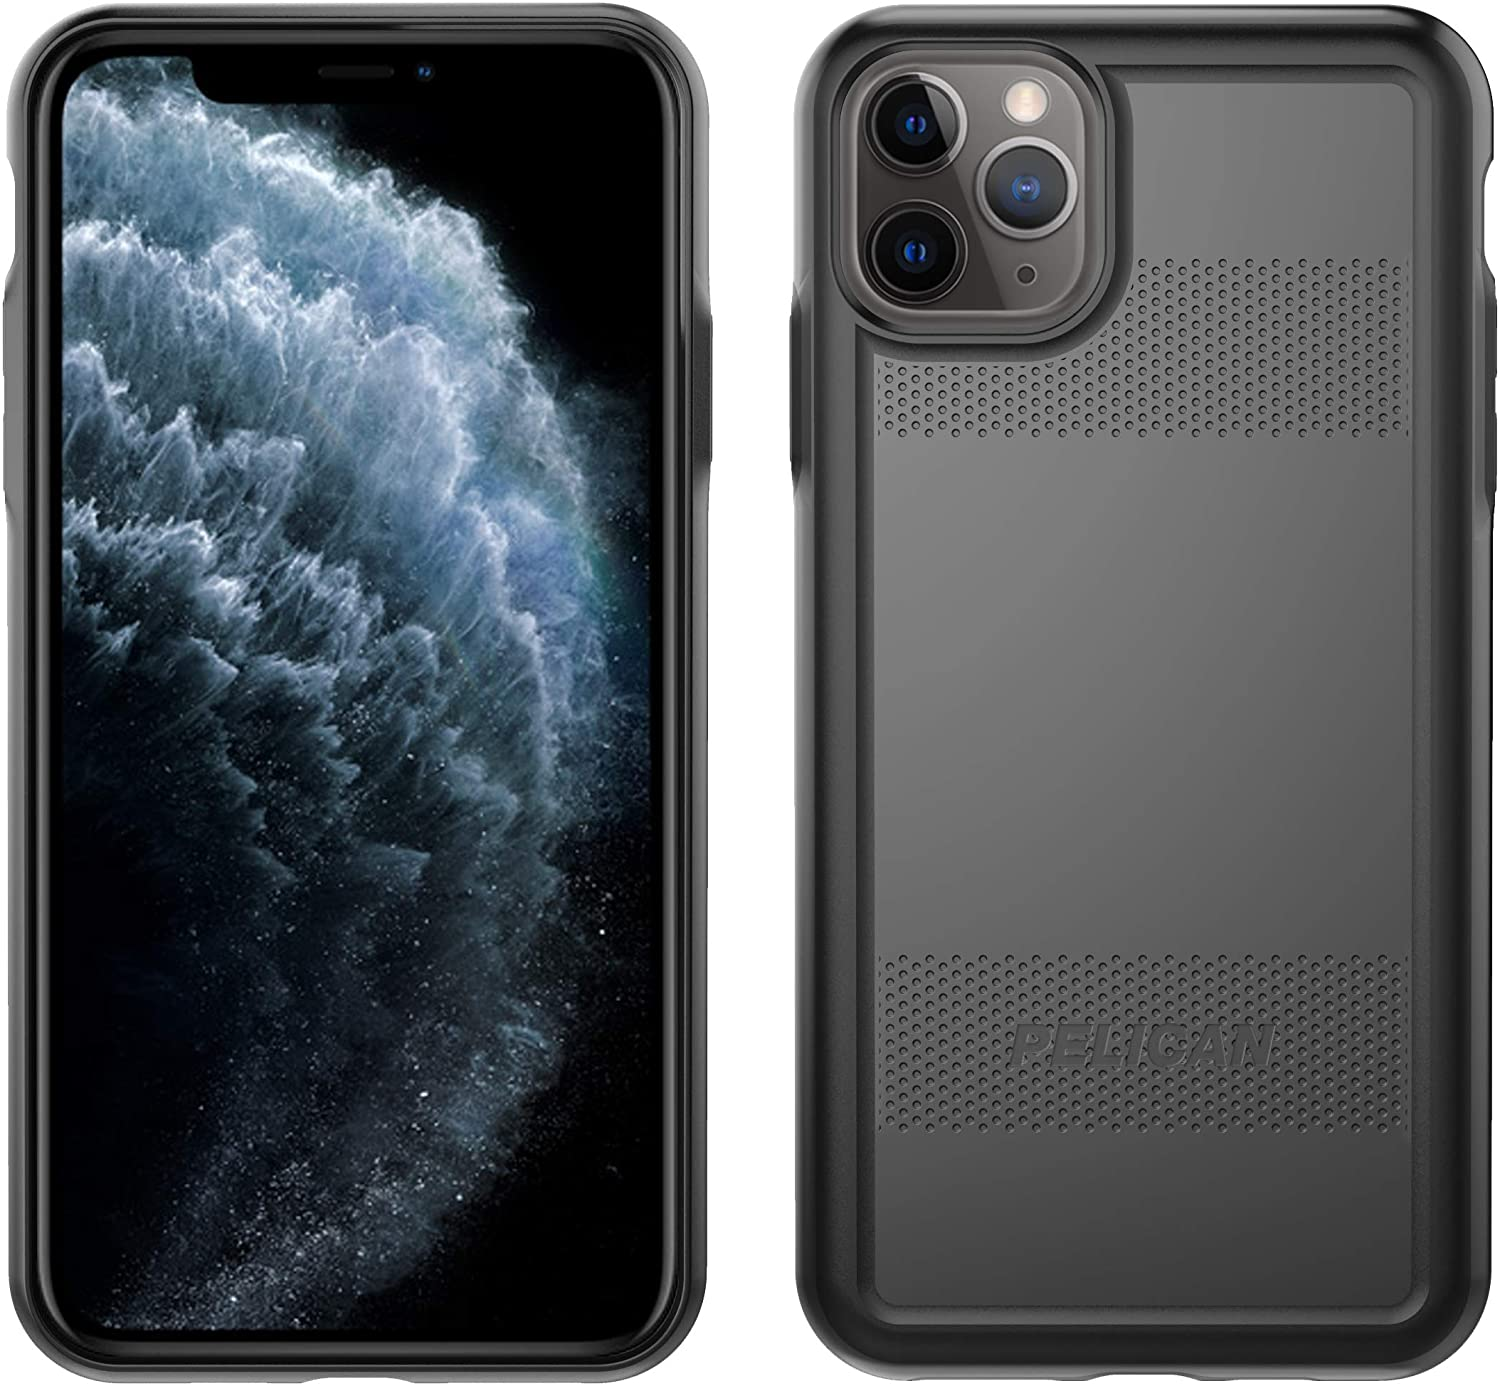 Pelican iPhone 11 Pro Max Case, Protector Series – Military Grade Drop Tested, TPU, Polycarbonate Protective Case for Apple iPhone 11 Pro Max (Black)